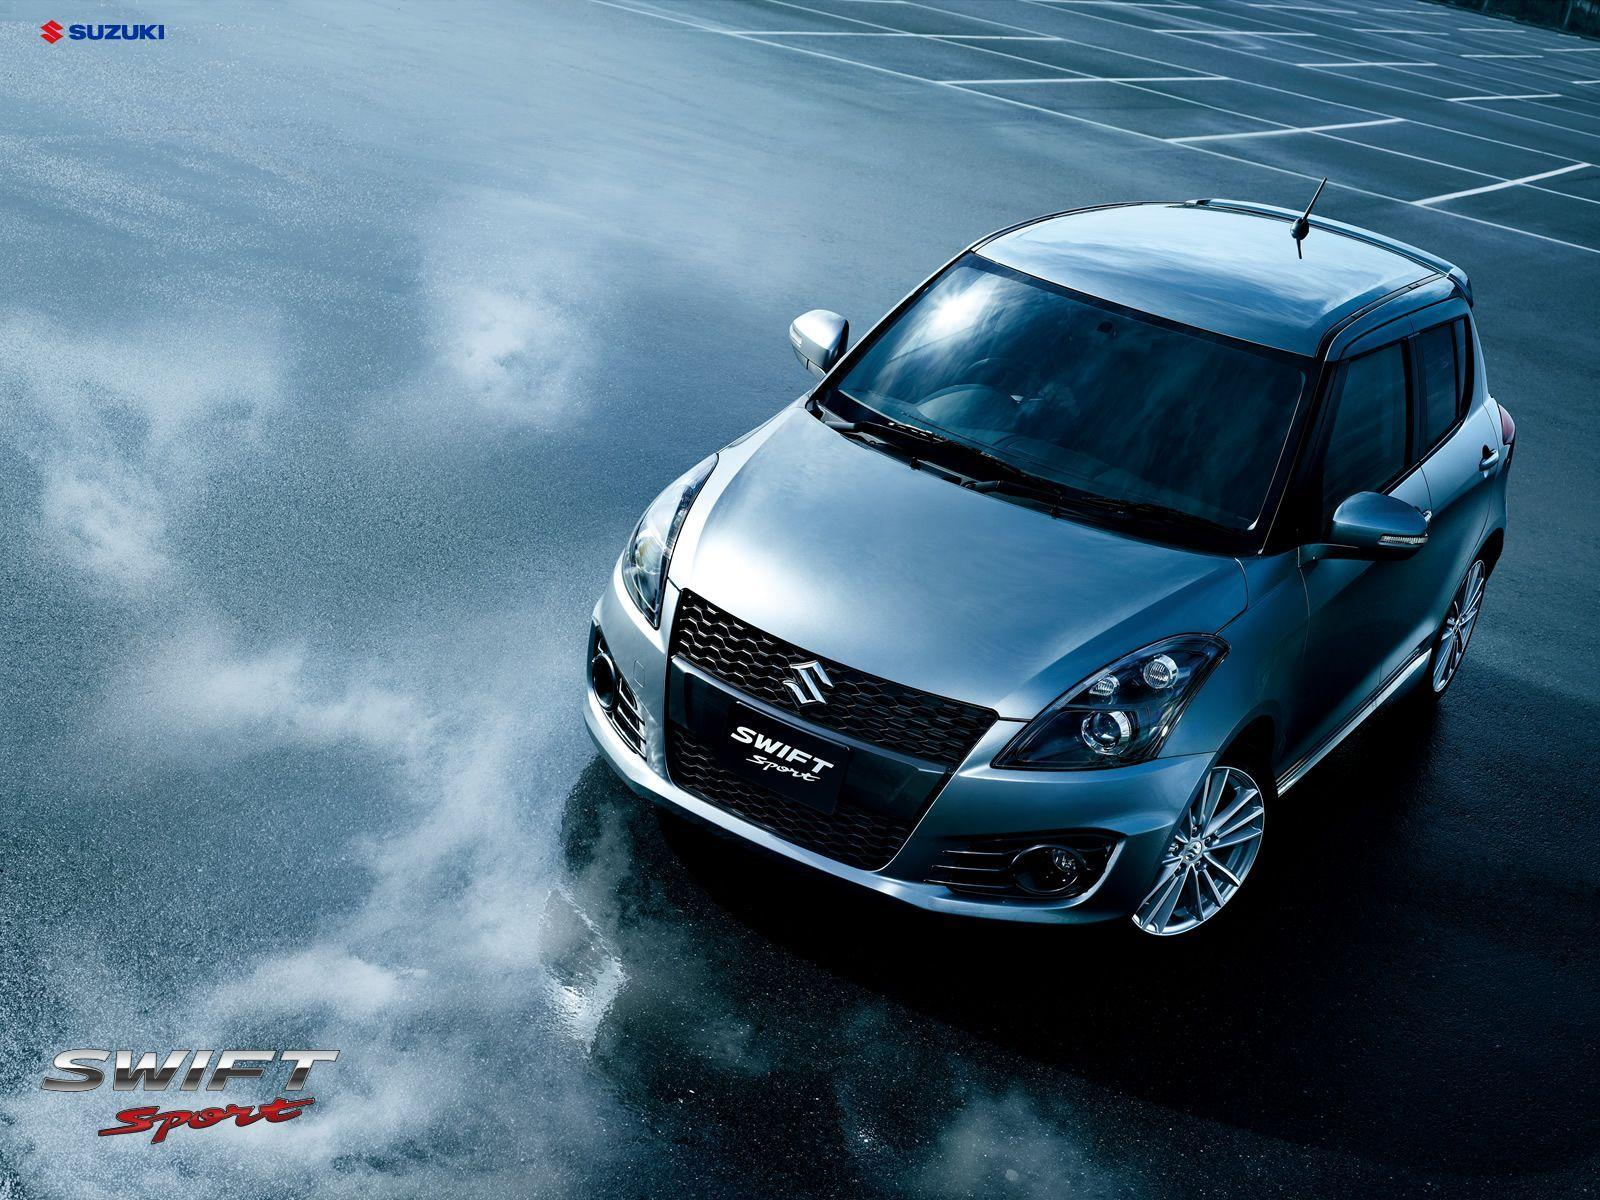 Suzuki Swift Sport wallpaper With a blistering new design, powerful ...